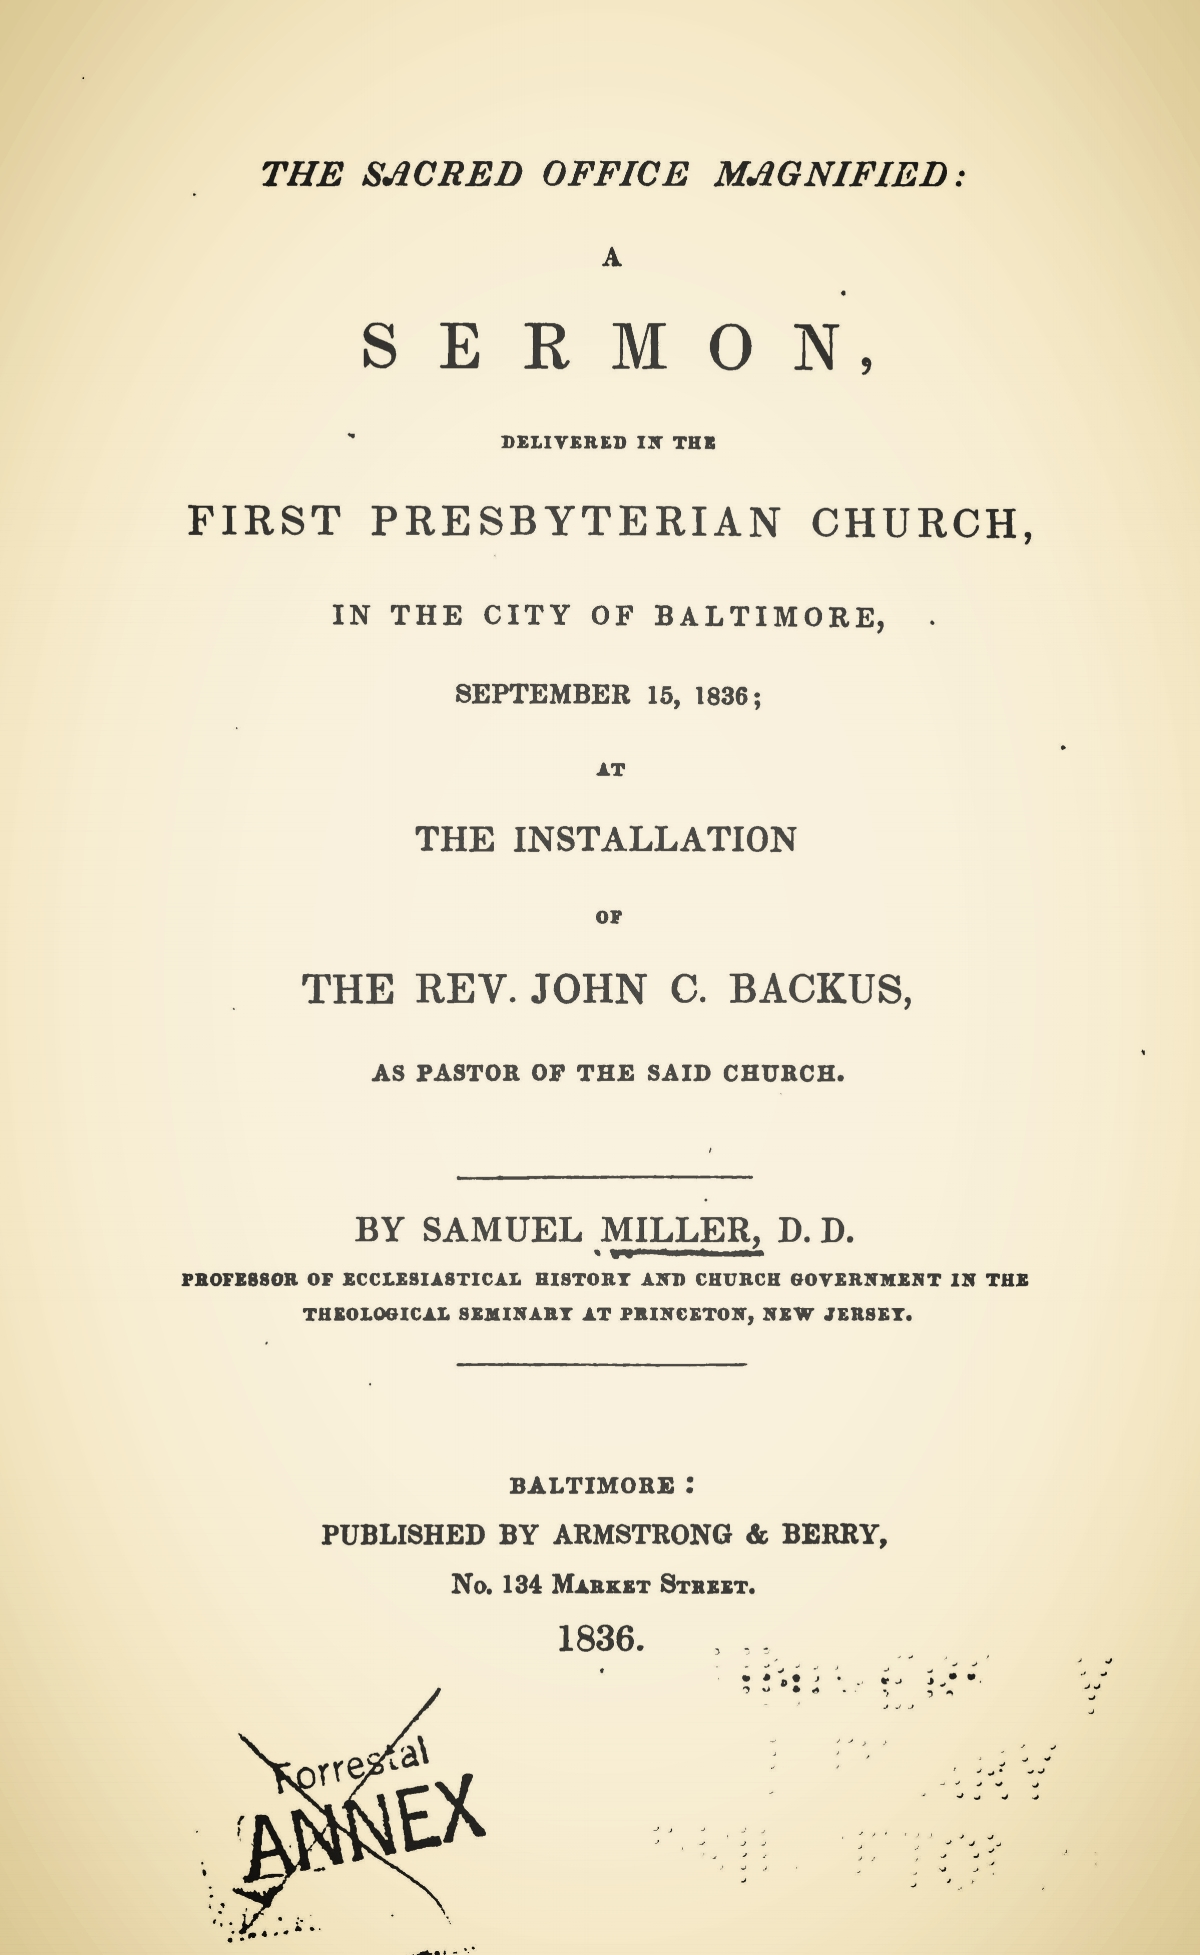 Miller, Samuel, The Sacred Office Magnified Title Page.jpg